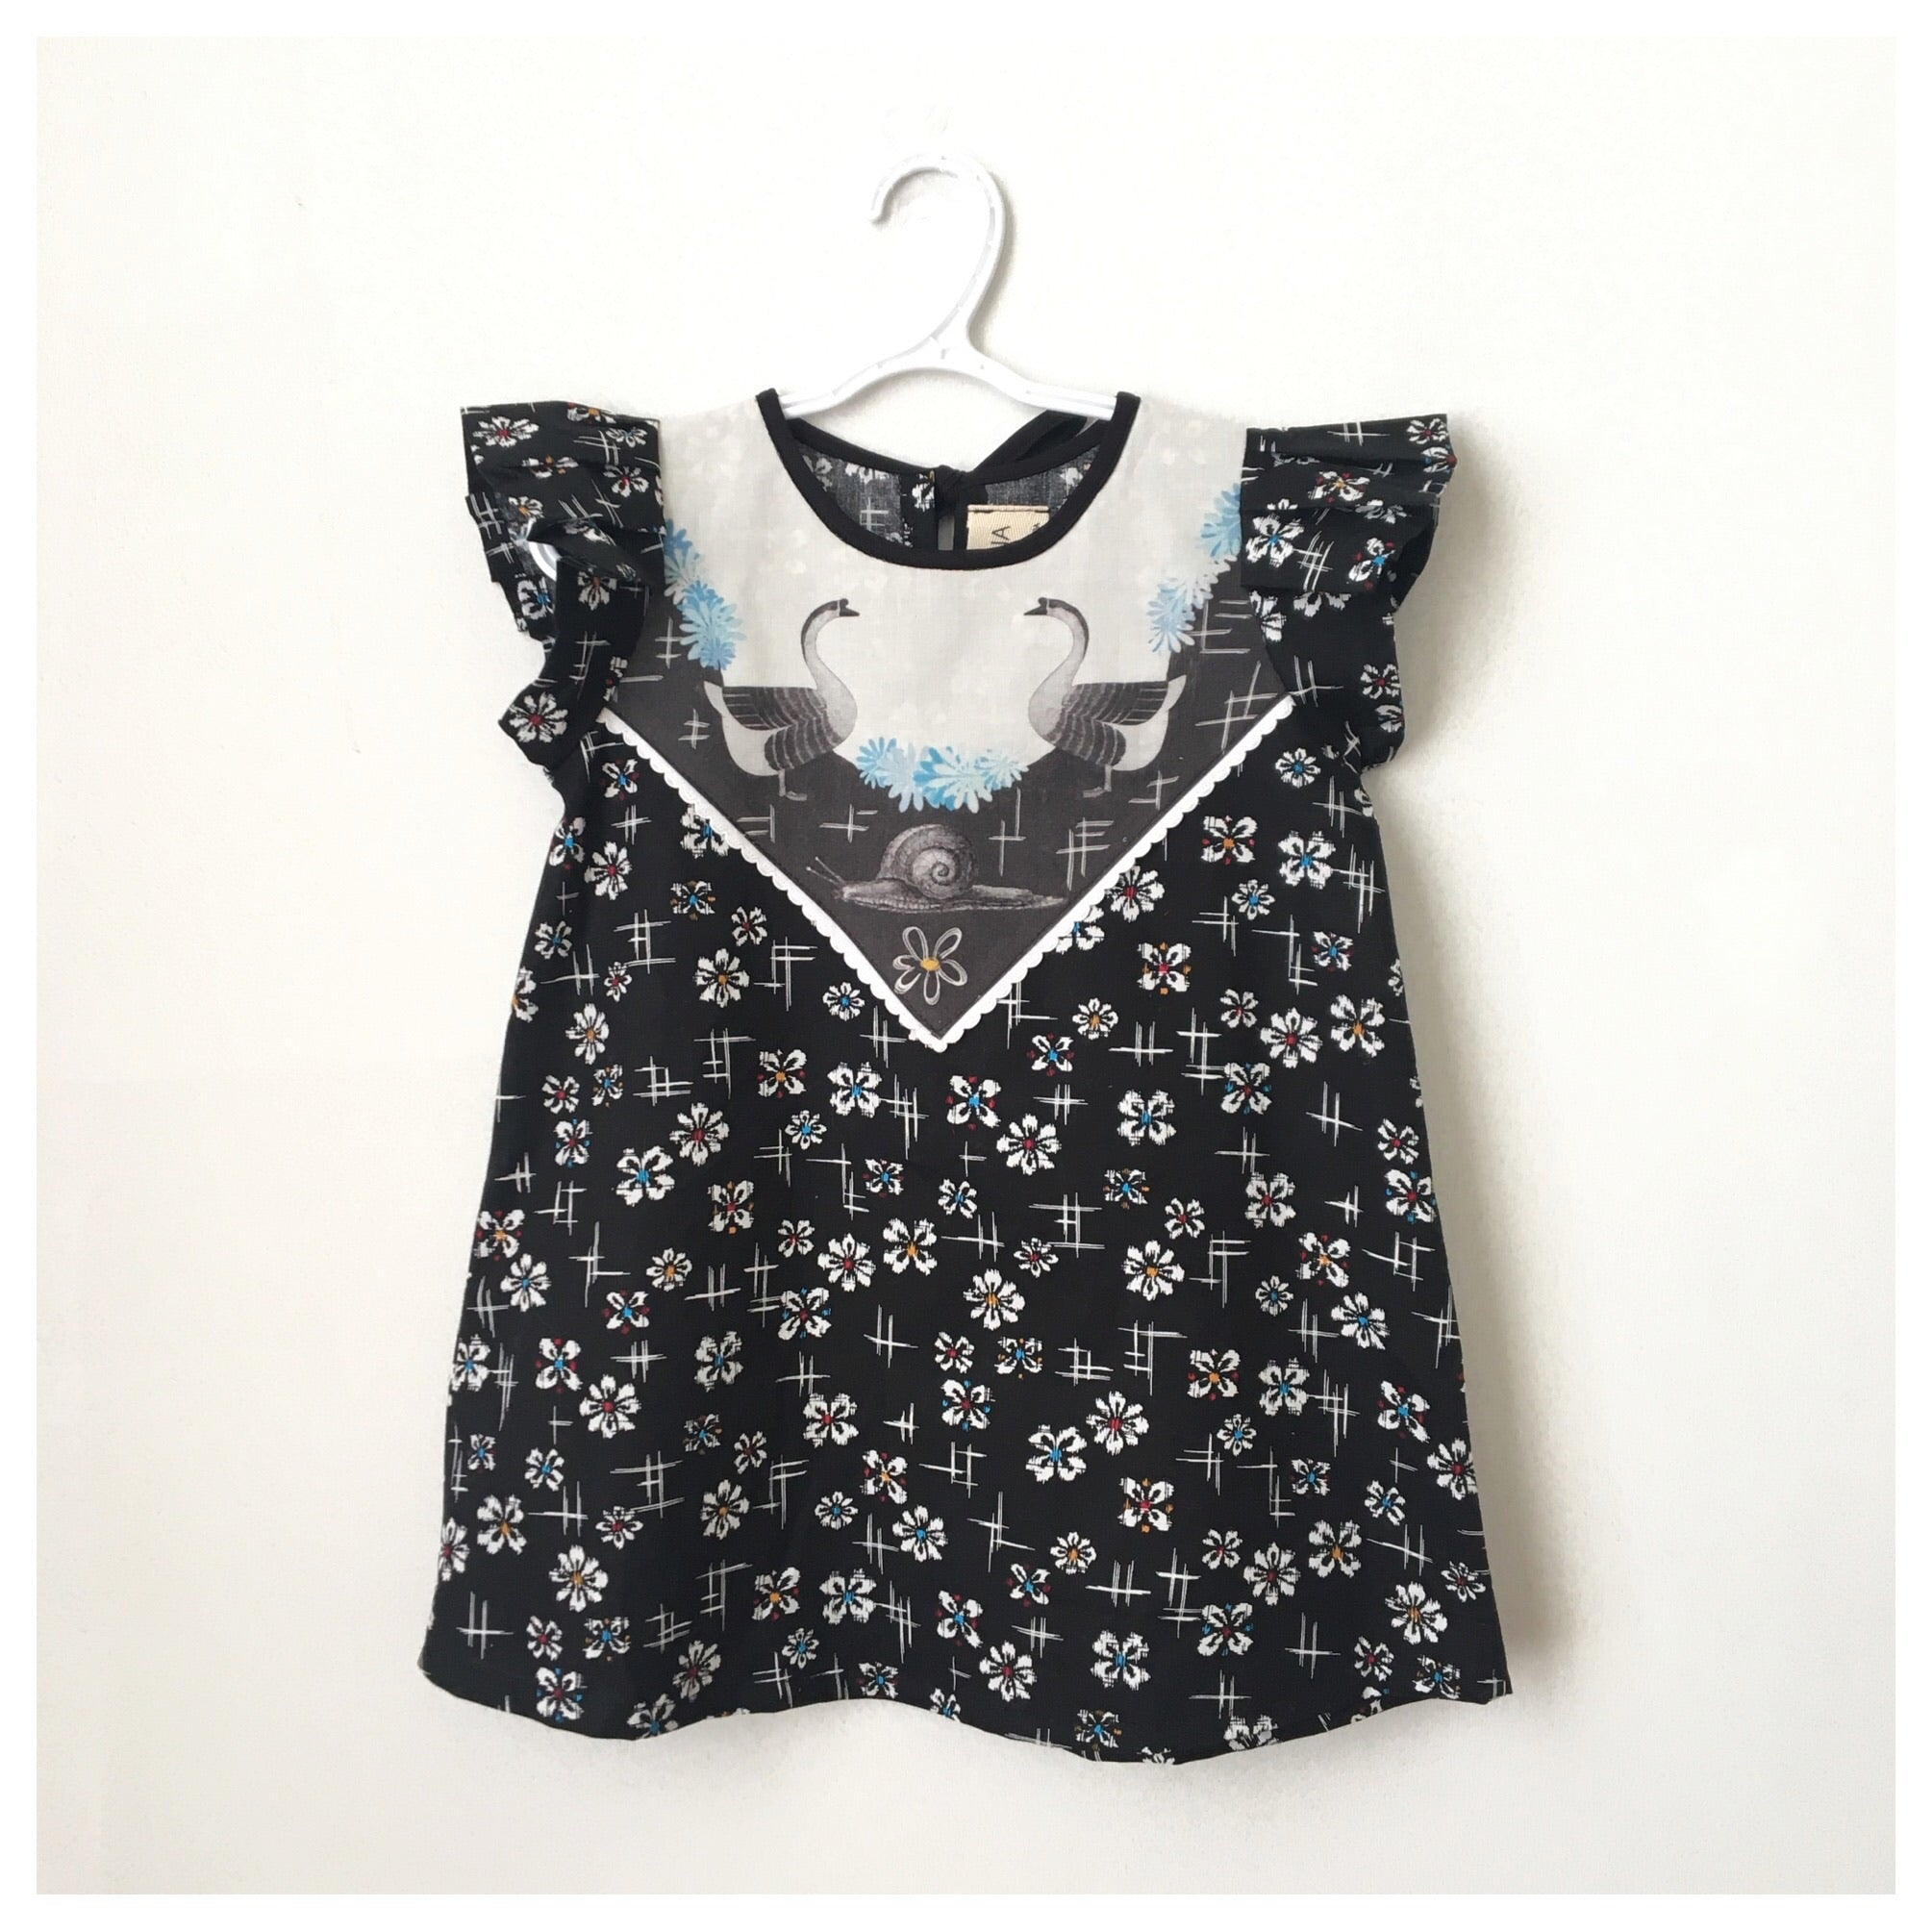 Robe tunique Oies et Escargot // Geese & Snail tunic dress